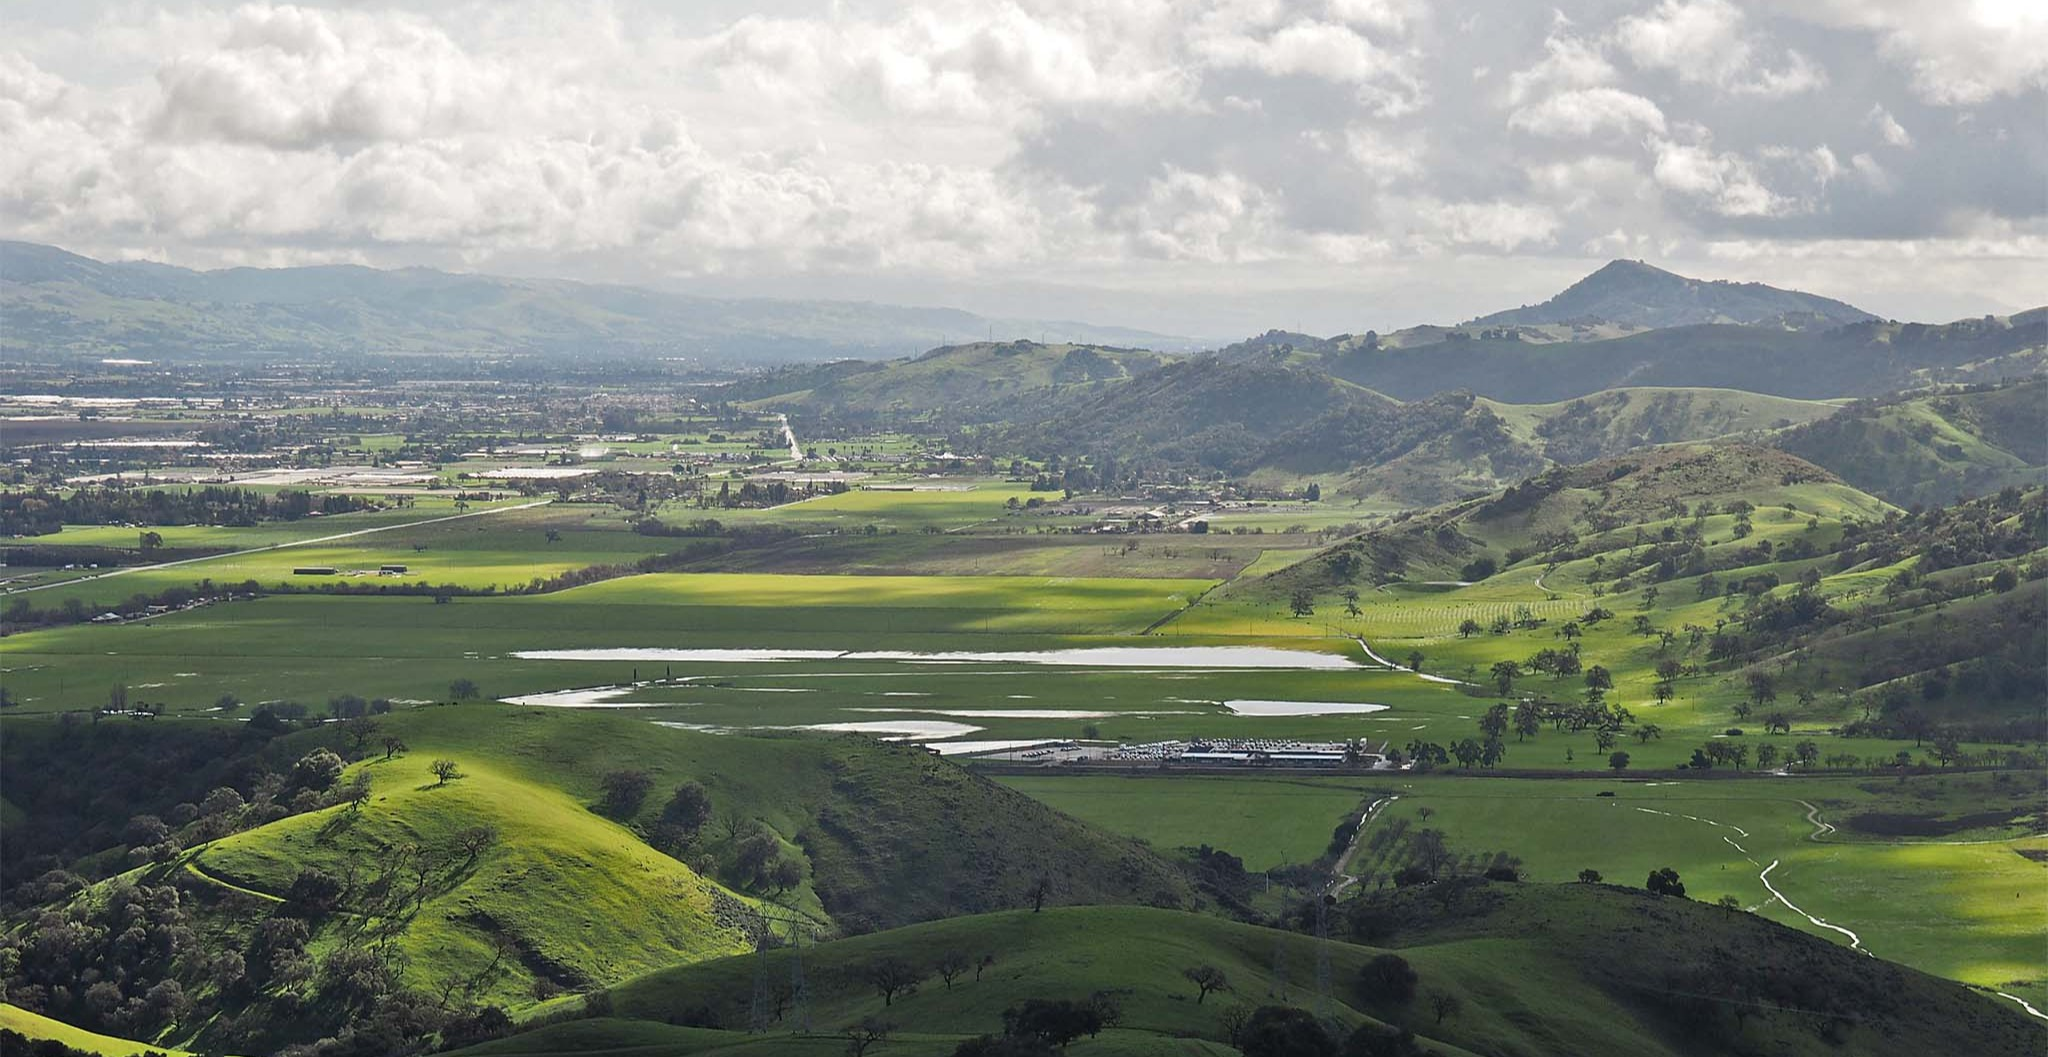 View of Coyote Valley looking south